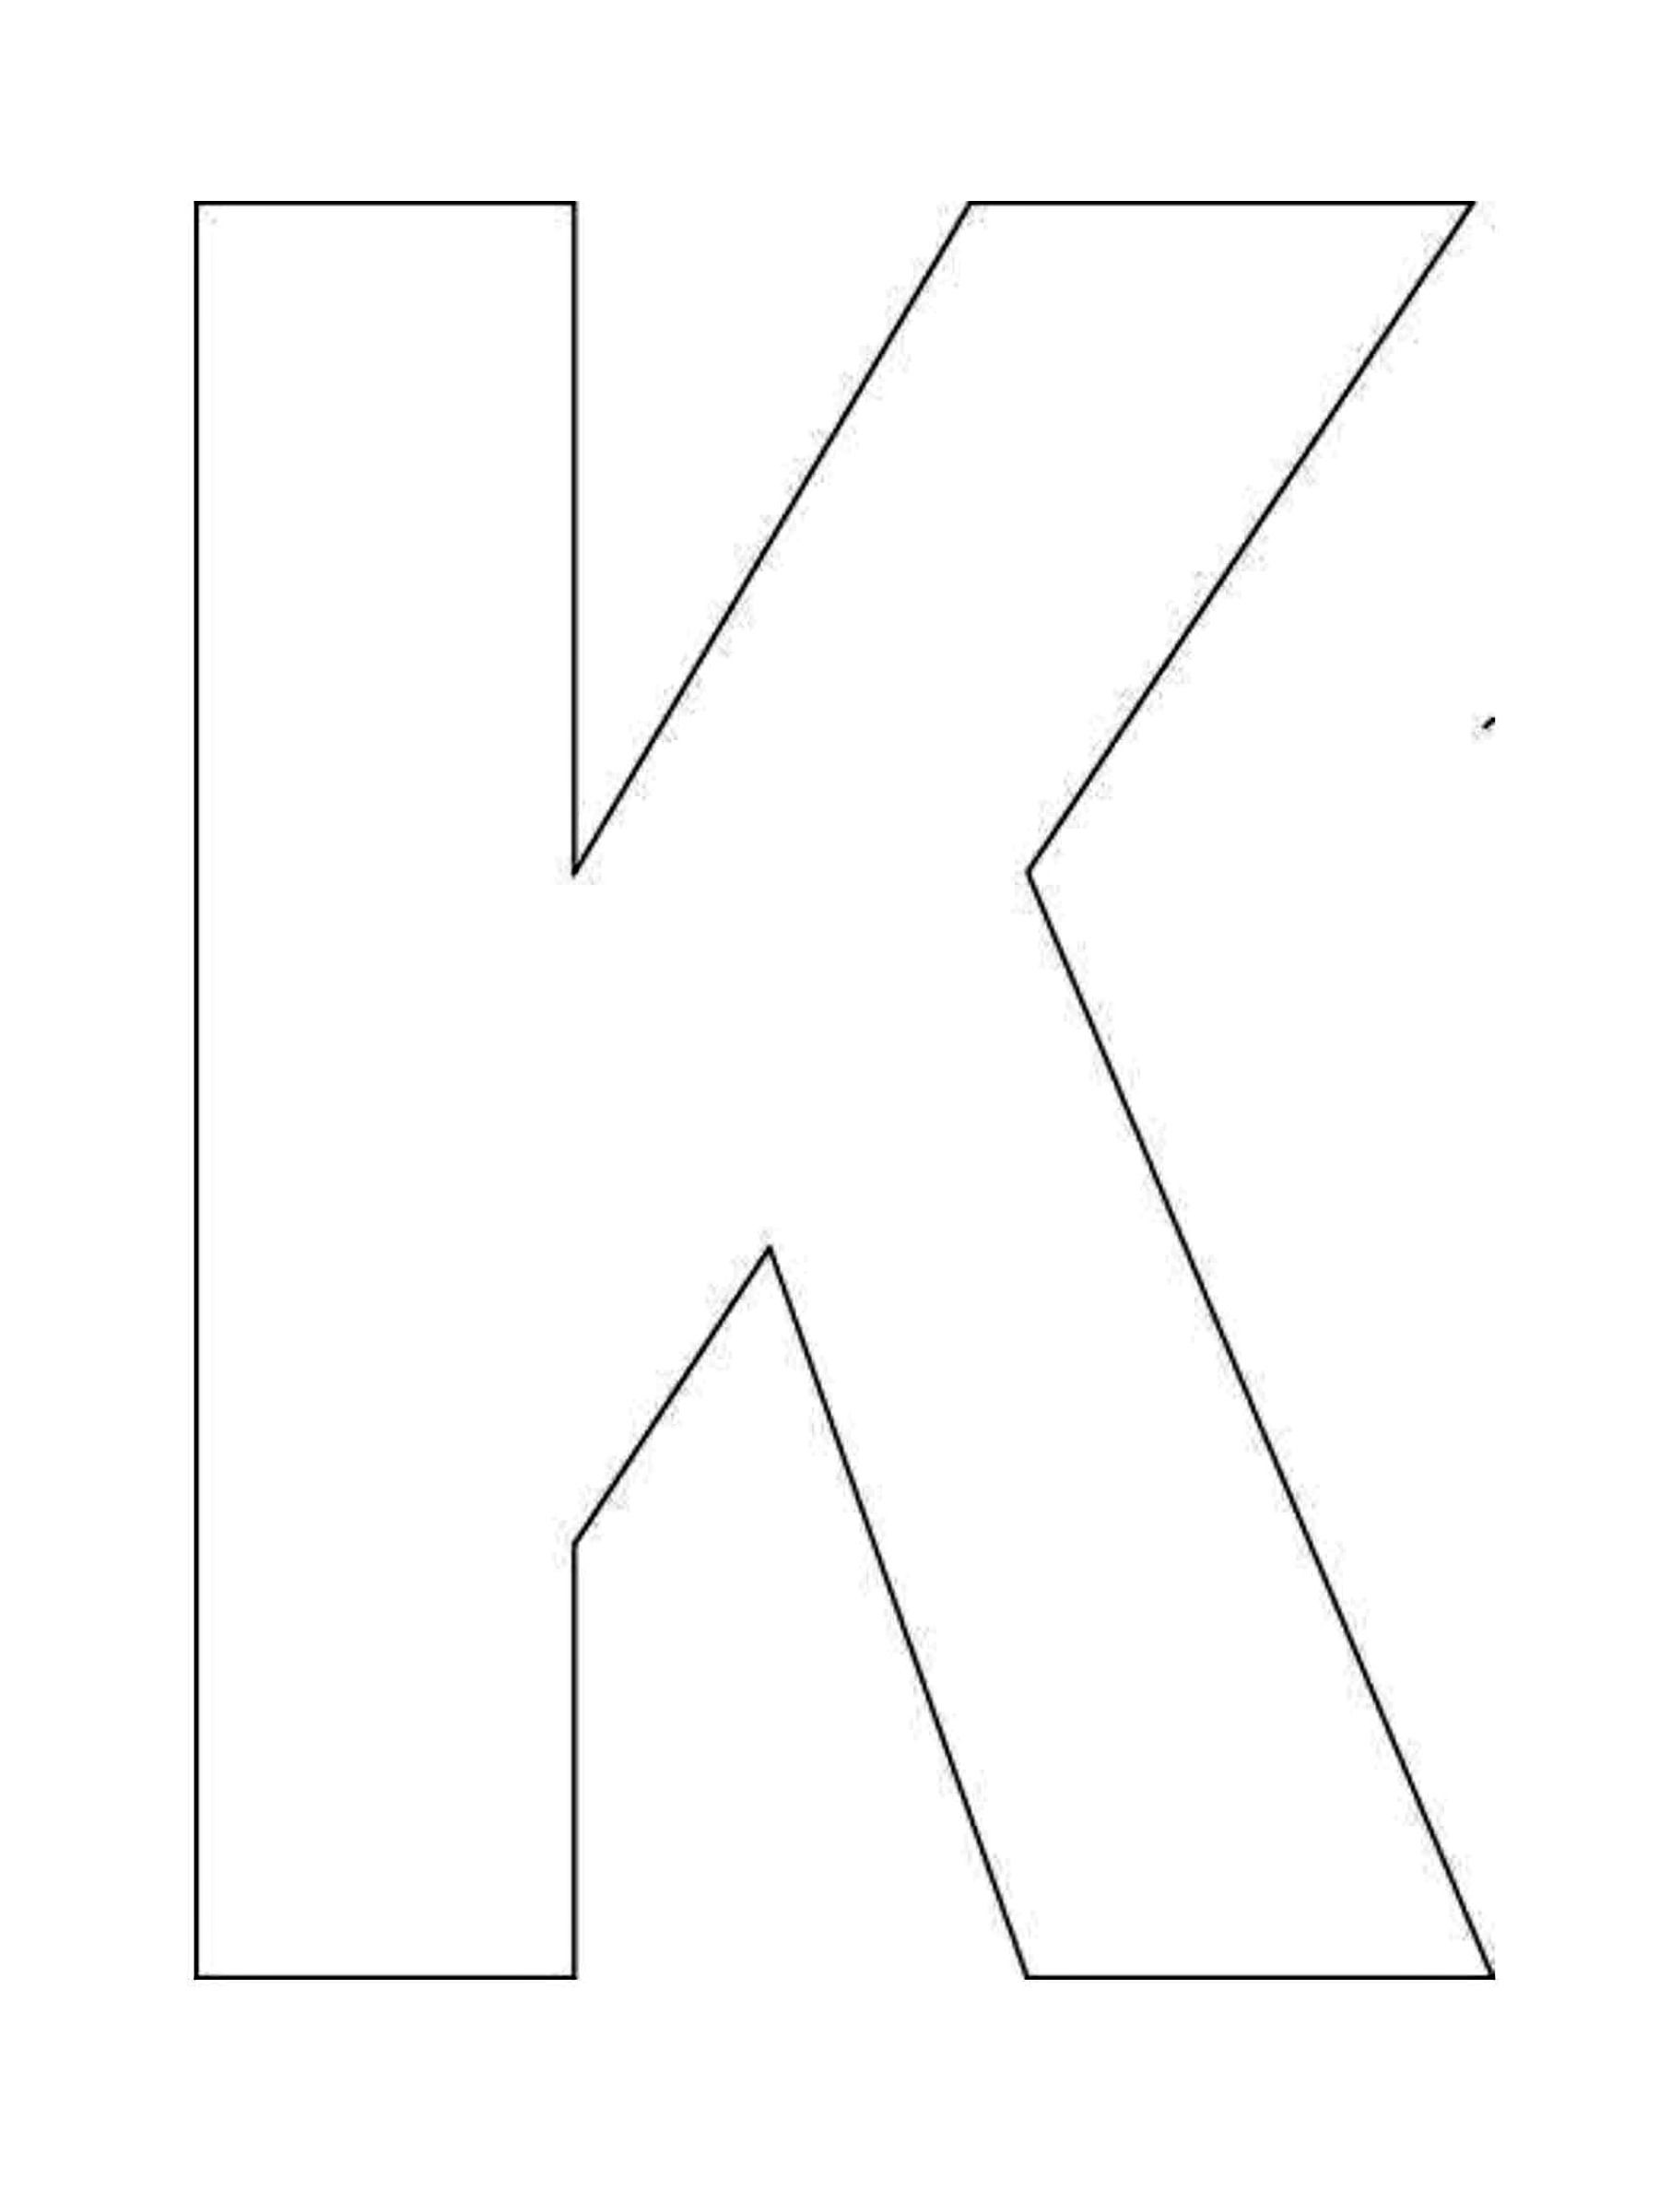 photo about Letter K Printable identify Printable Alphabet Letter K Template Templates At Coloring